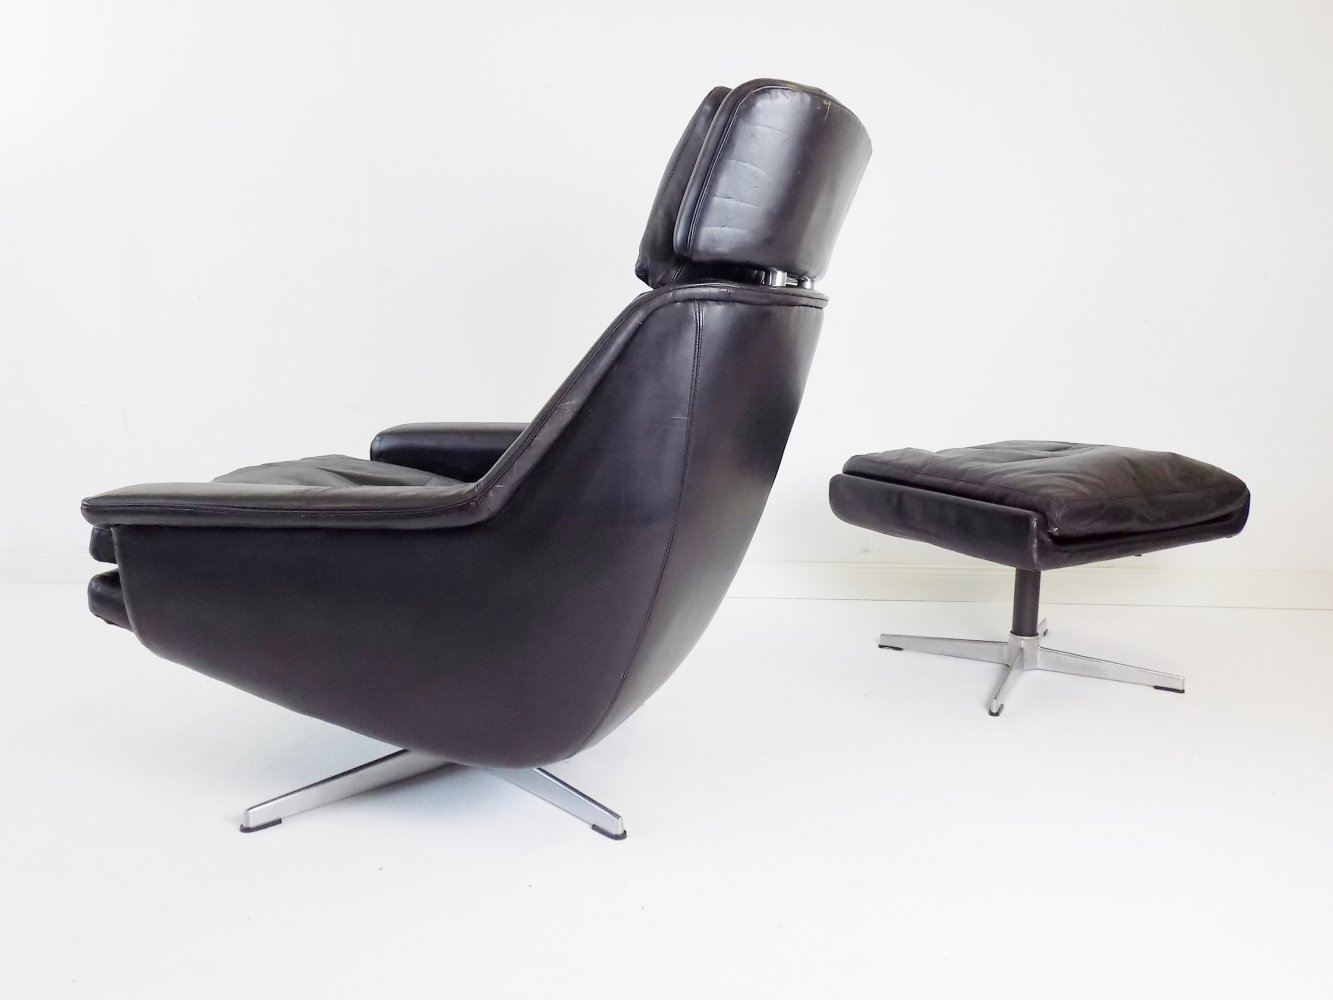 ESA 802 black leather armchair with ottoman by Werner Langenfeld